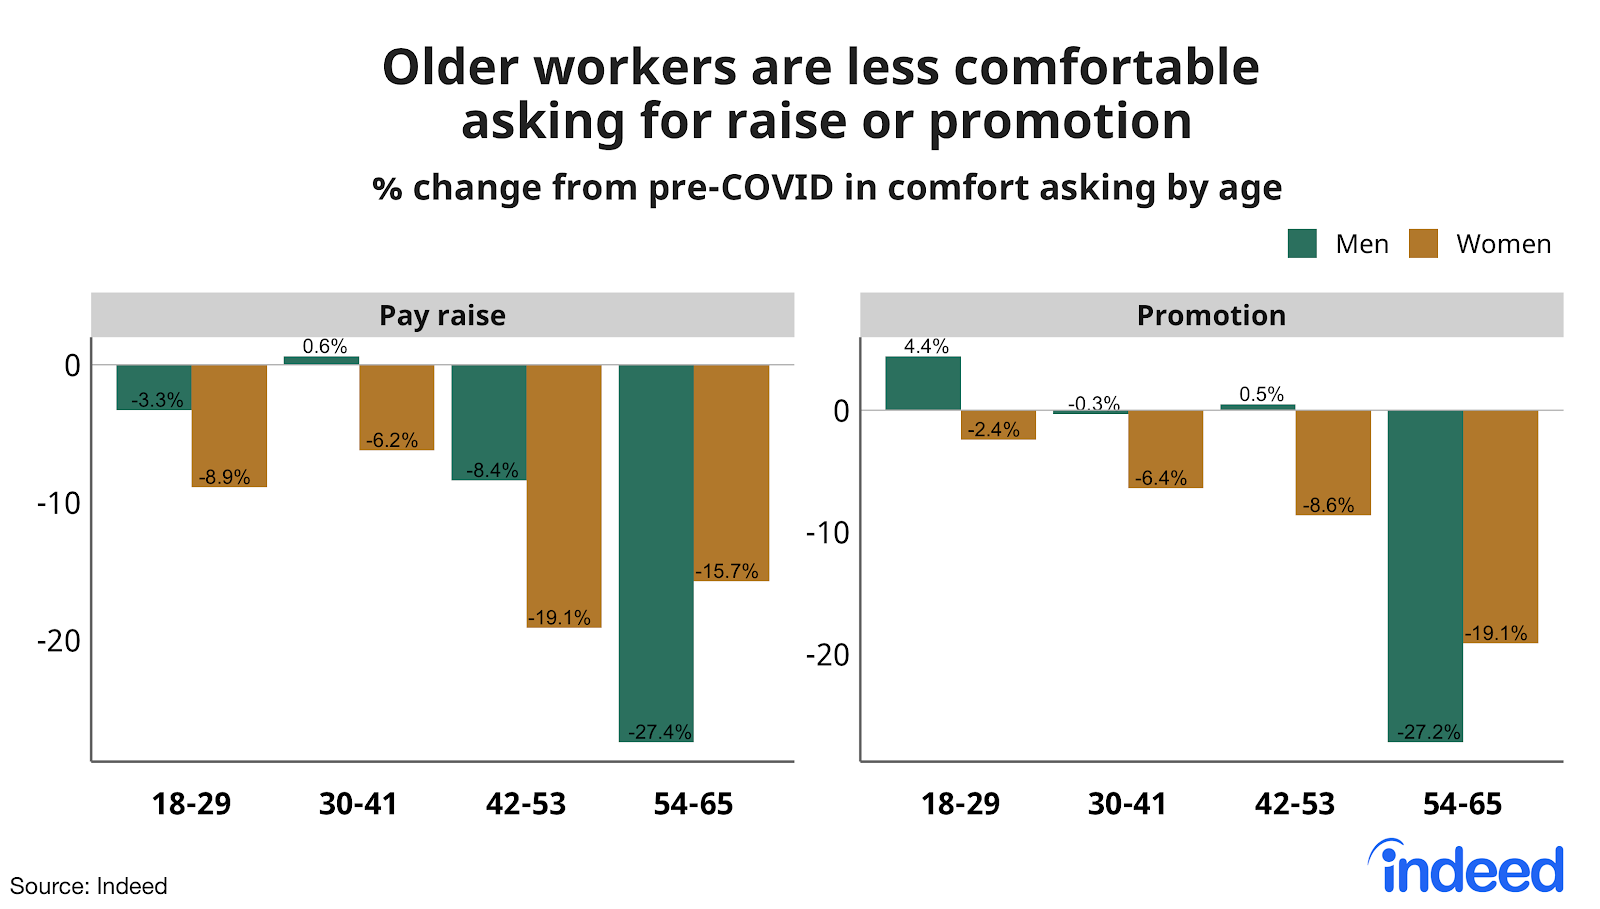 Double bar chart men vs women showing how older workers are less comfortable asking for raise or promotion